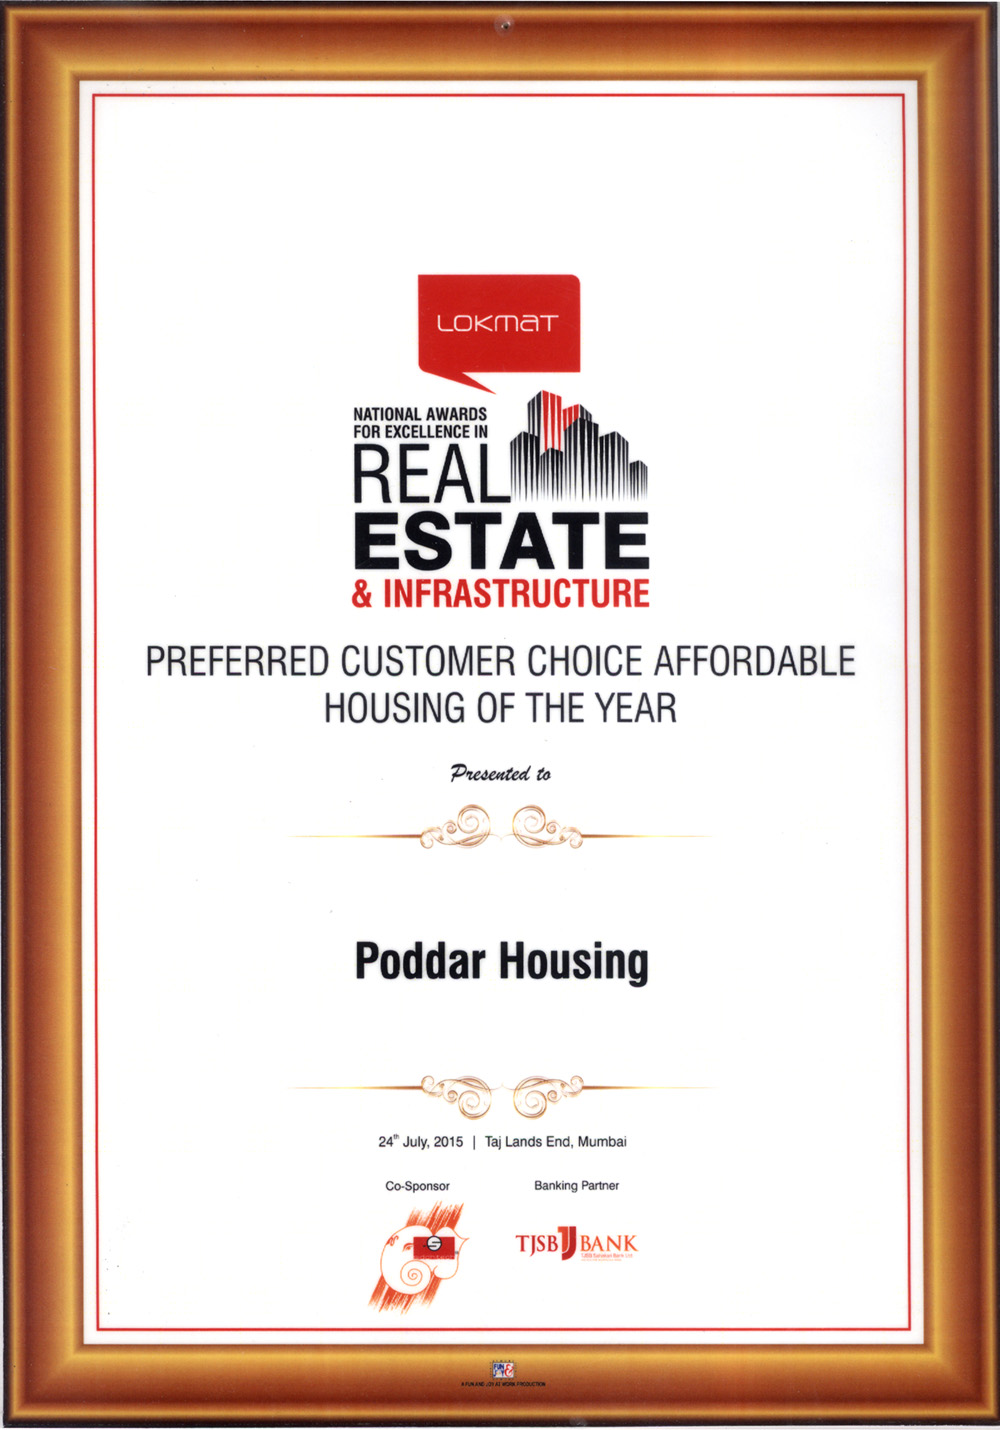 Affordable Housing of the Year